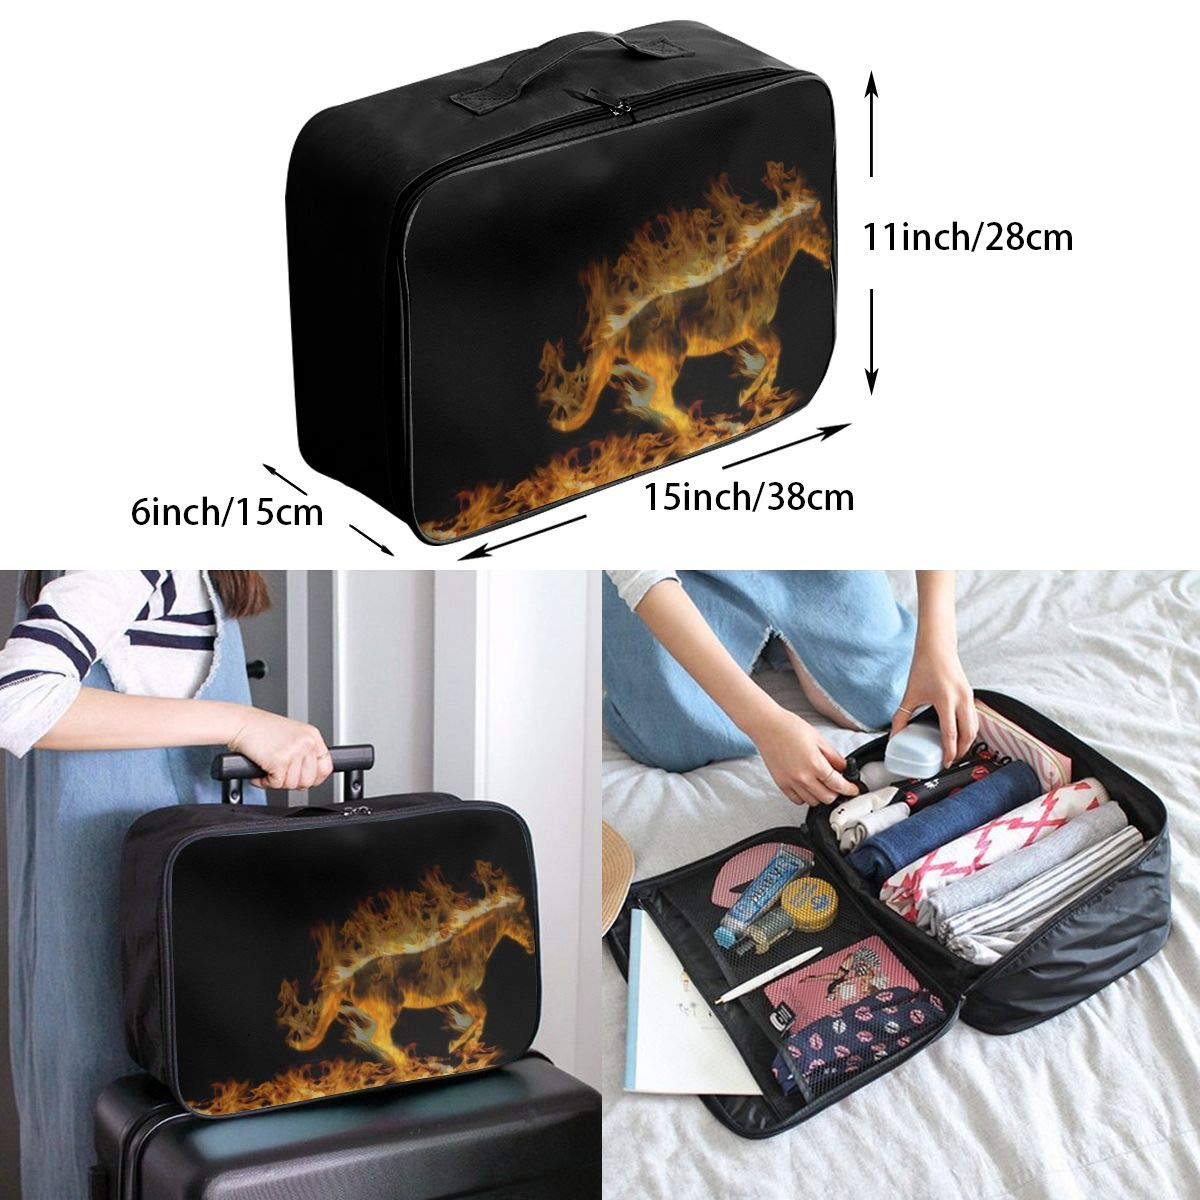 Travel Luggage Duffle Bag Lightweight Portable Handbag Flaming Horse Pattern Large Capacity Waterproof Foldable Storage Tote